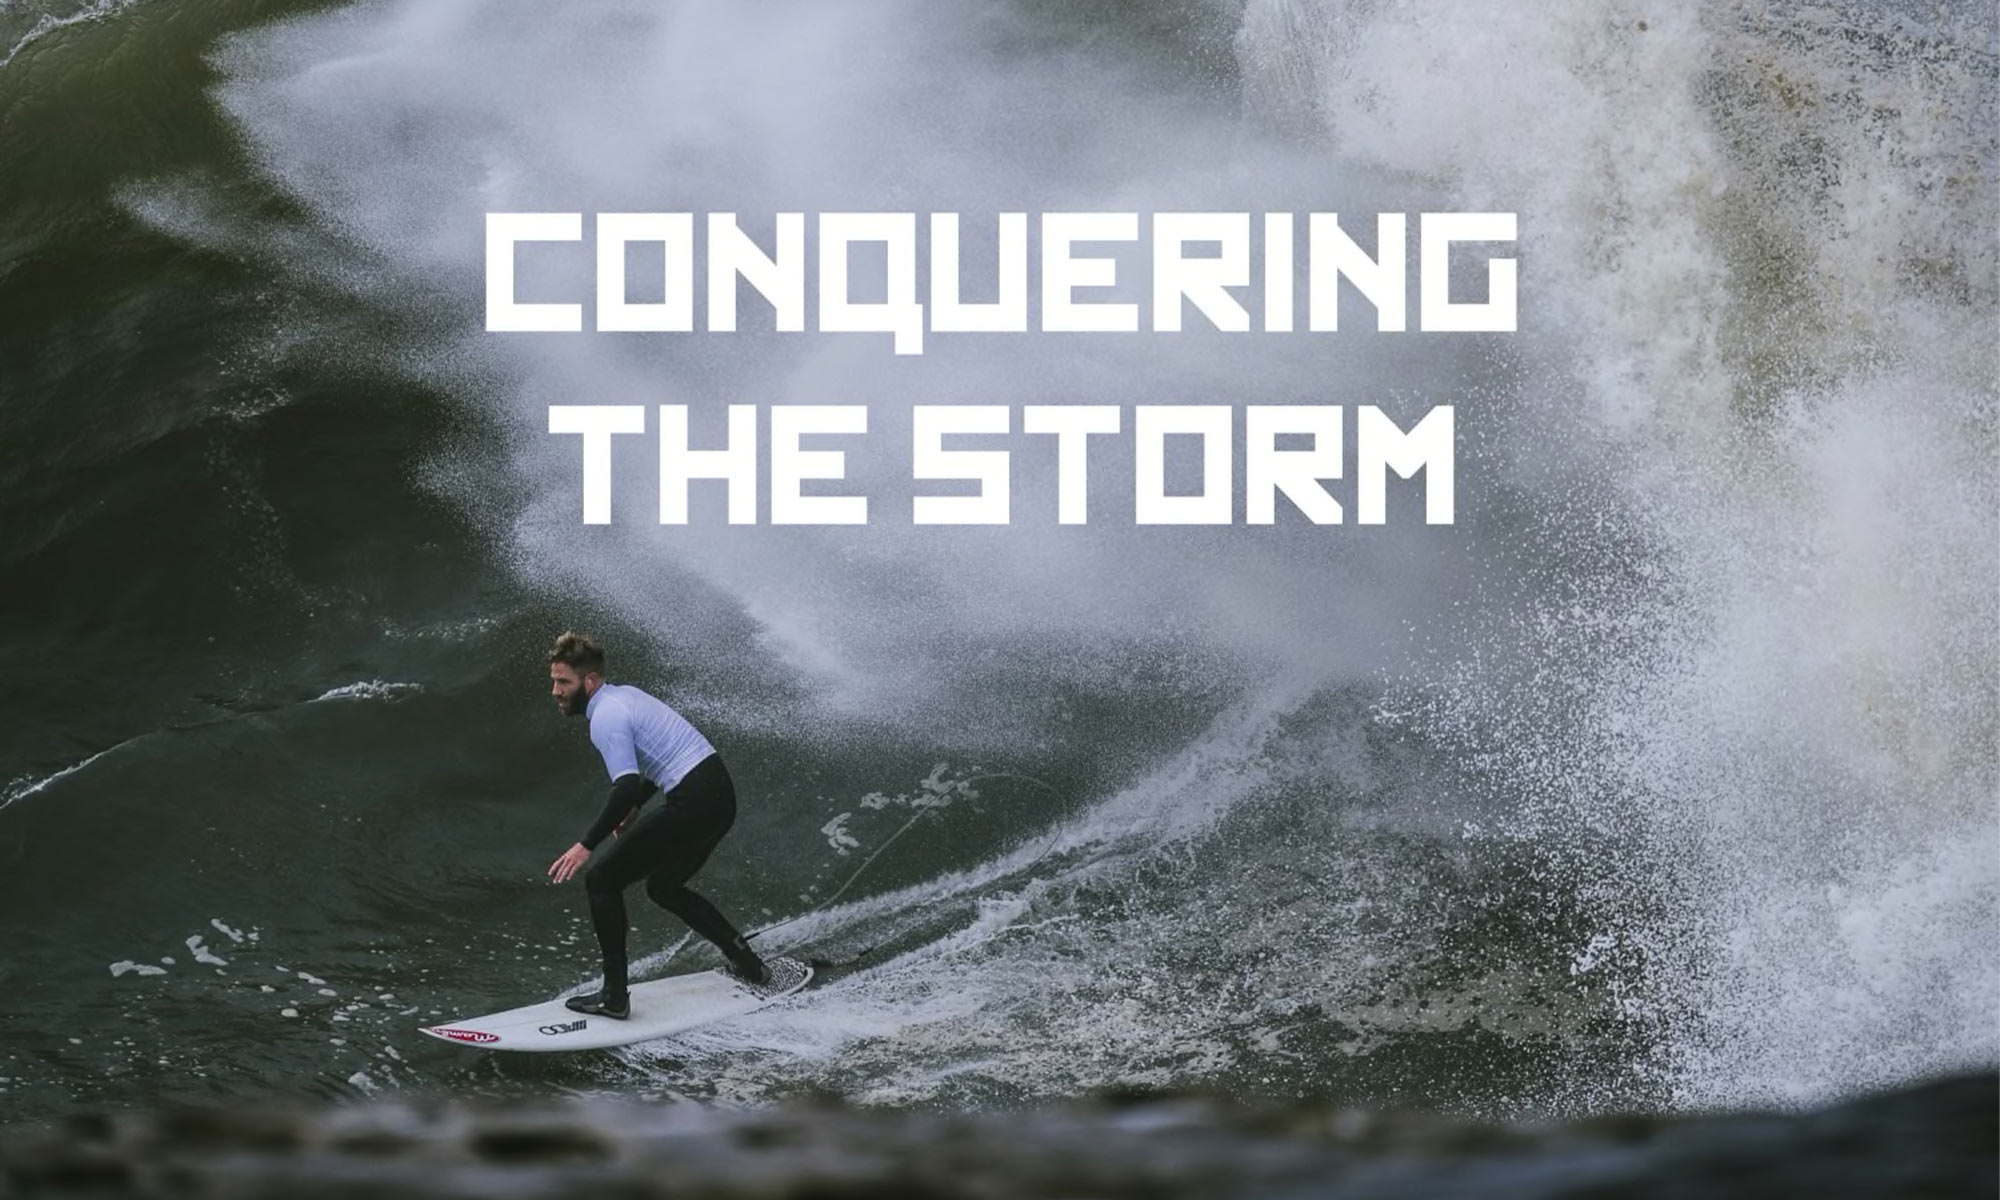 Conquering the storm